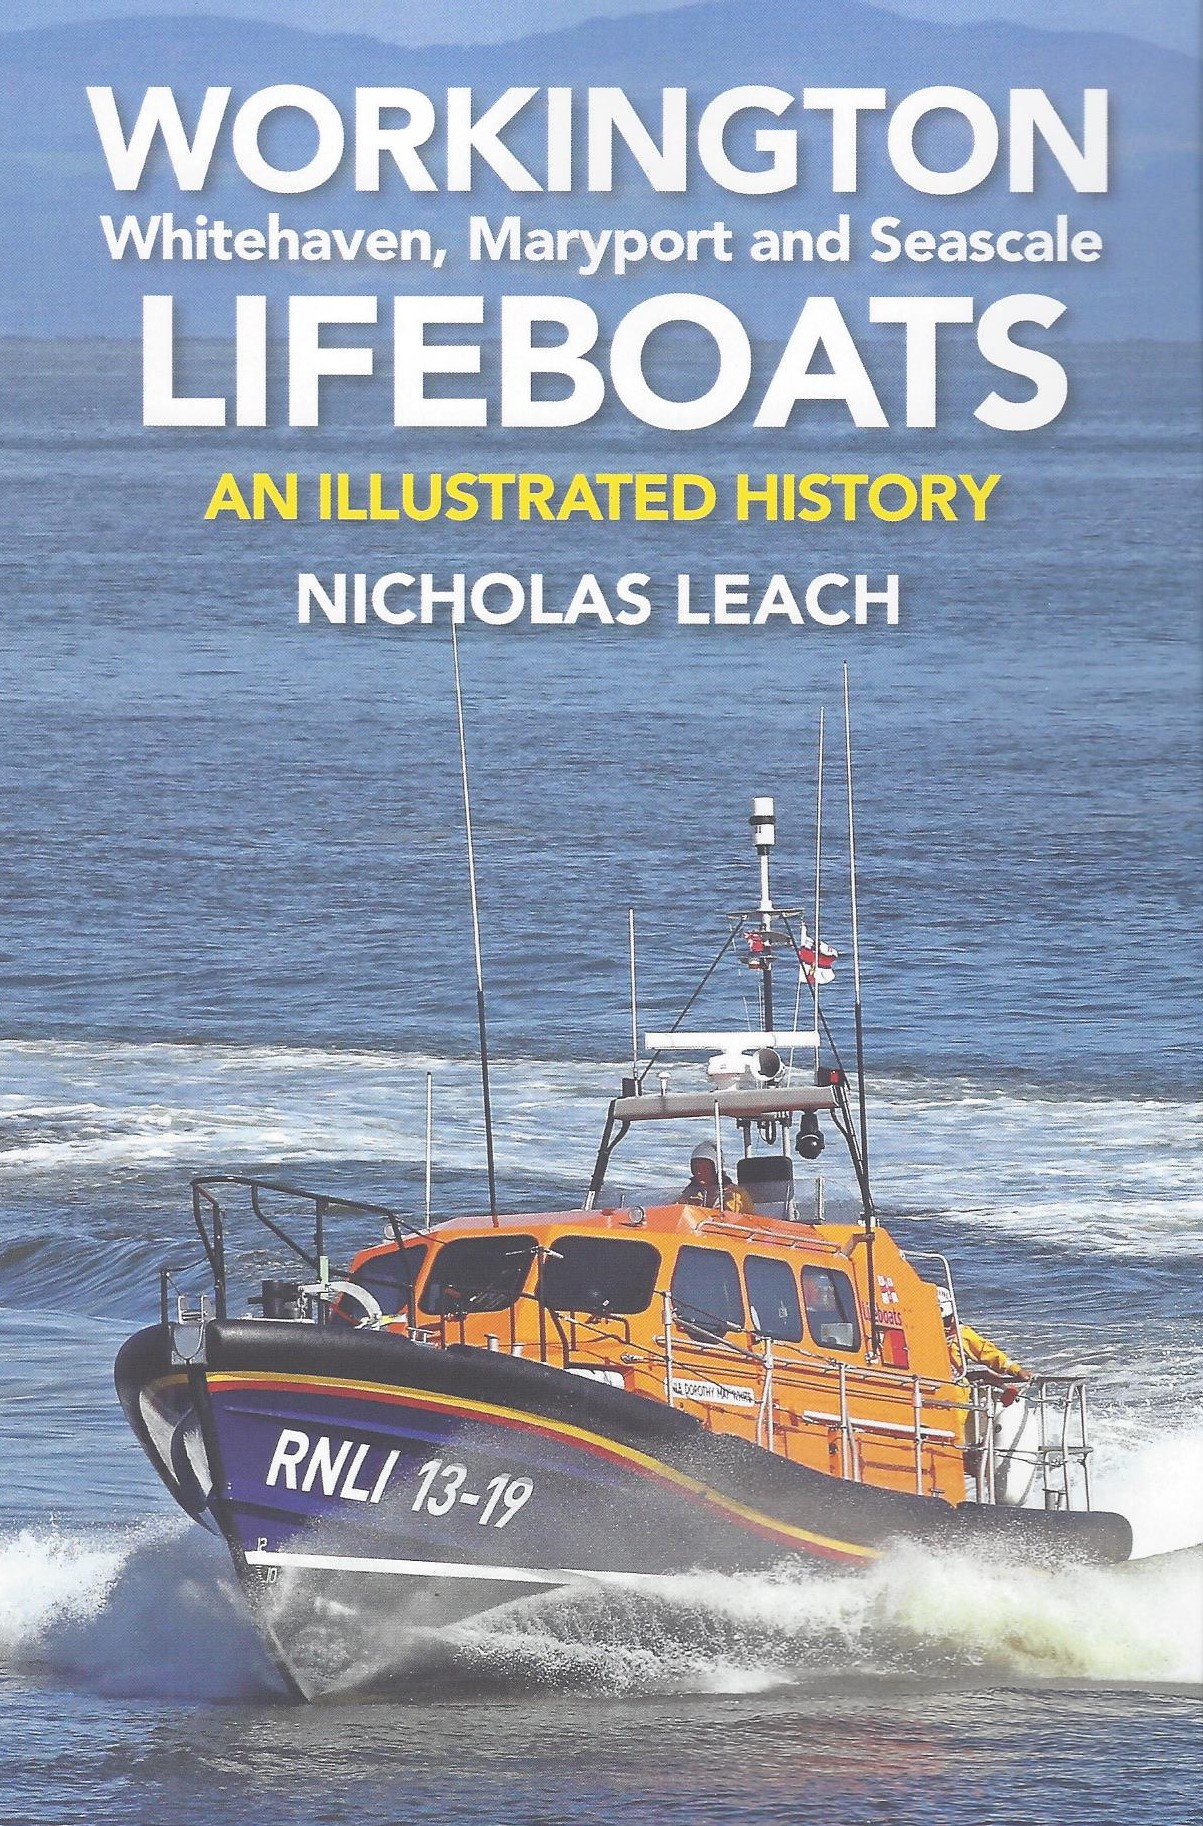 Workington, Whitehaven, Maryport and Seascale Lifeboats: An Illustrated History